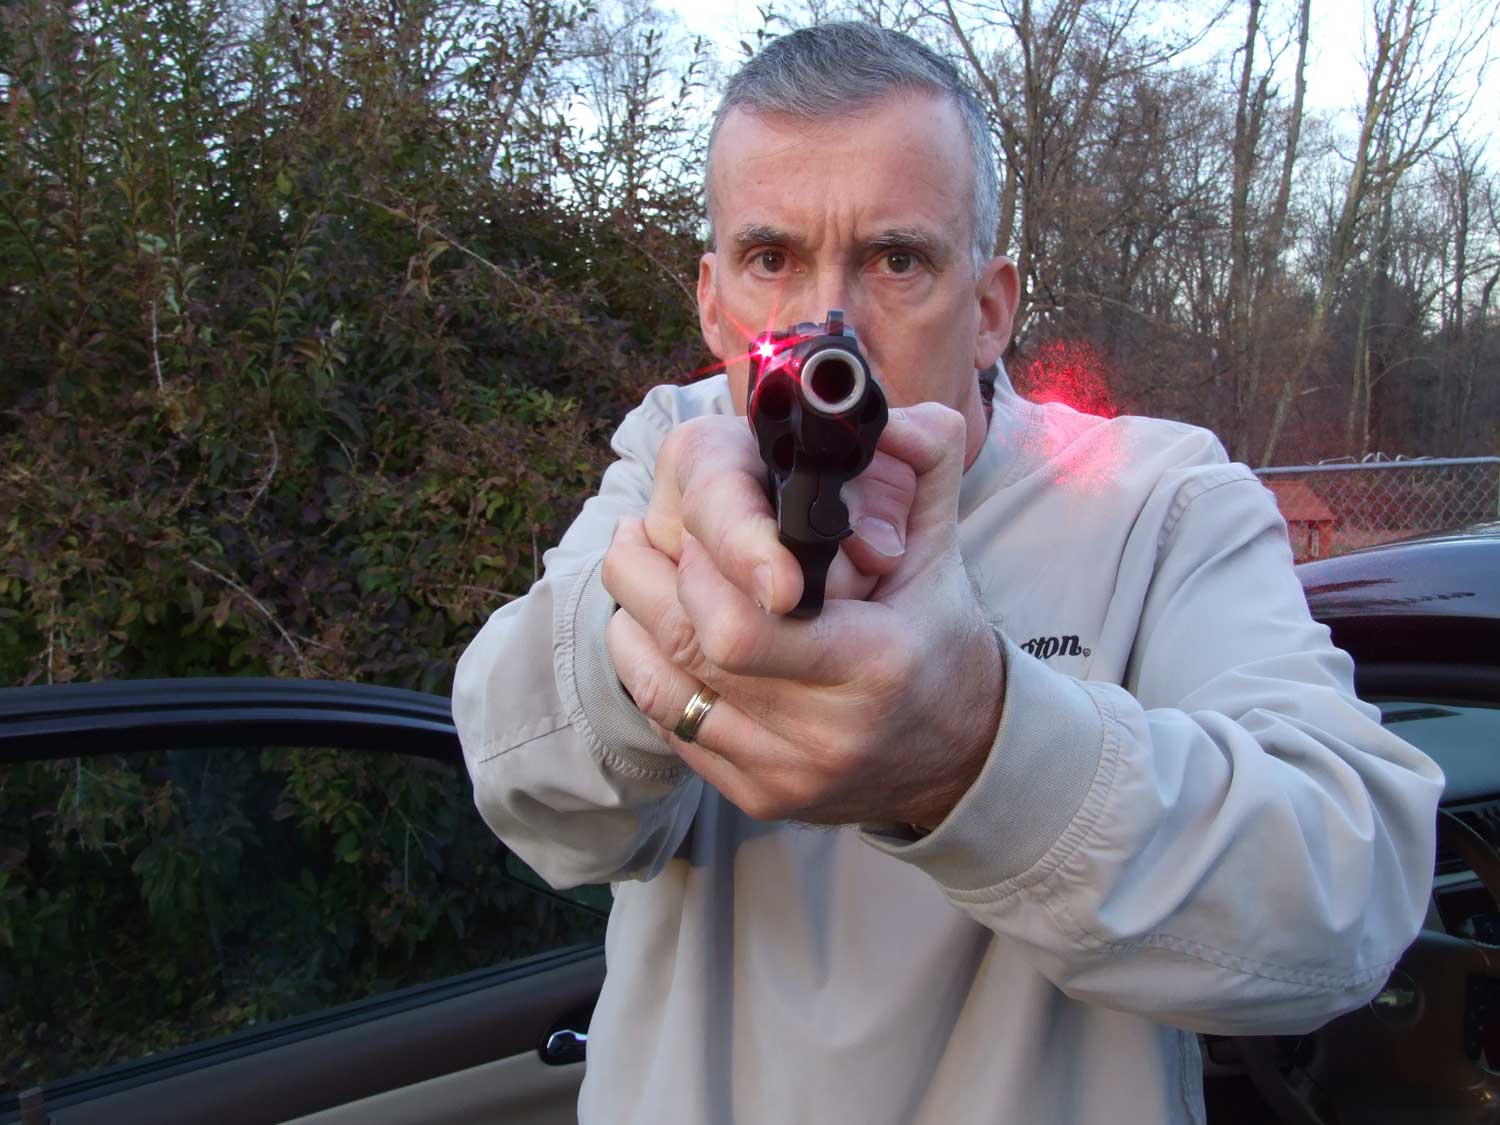 Scott Wagner aiming the Crimson Trace laser on the S&W Bodyguard .38 Spl